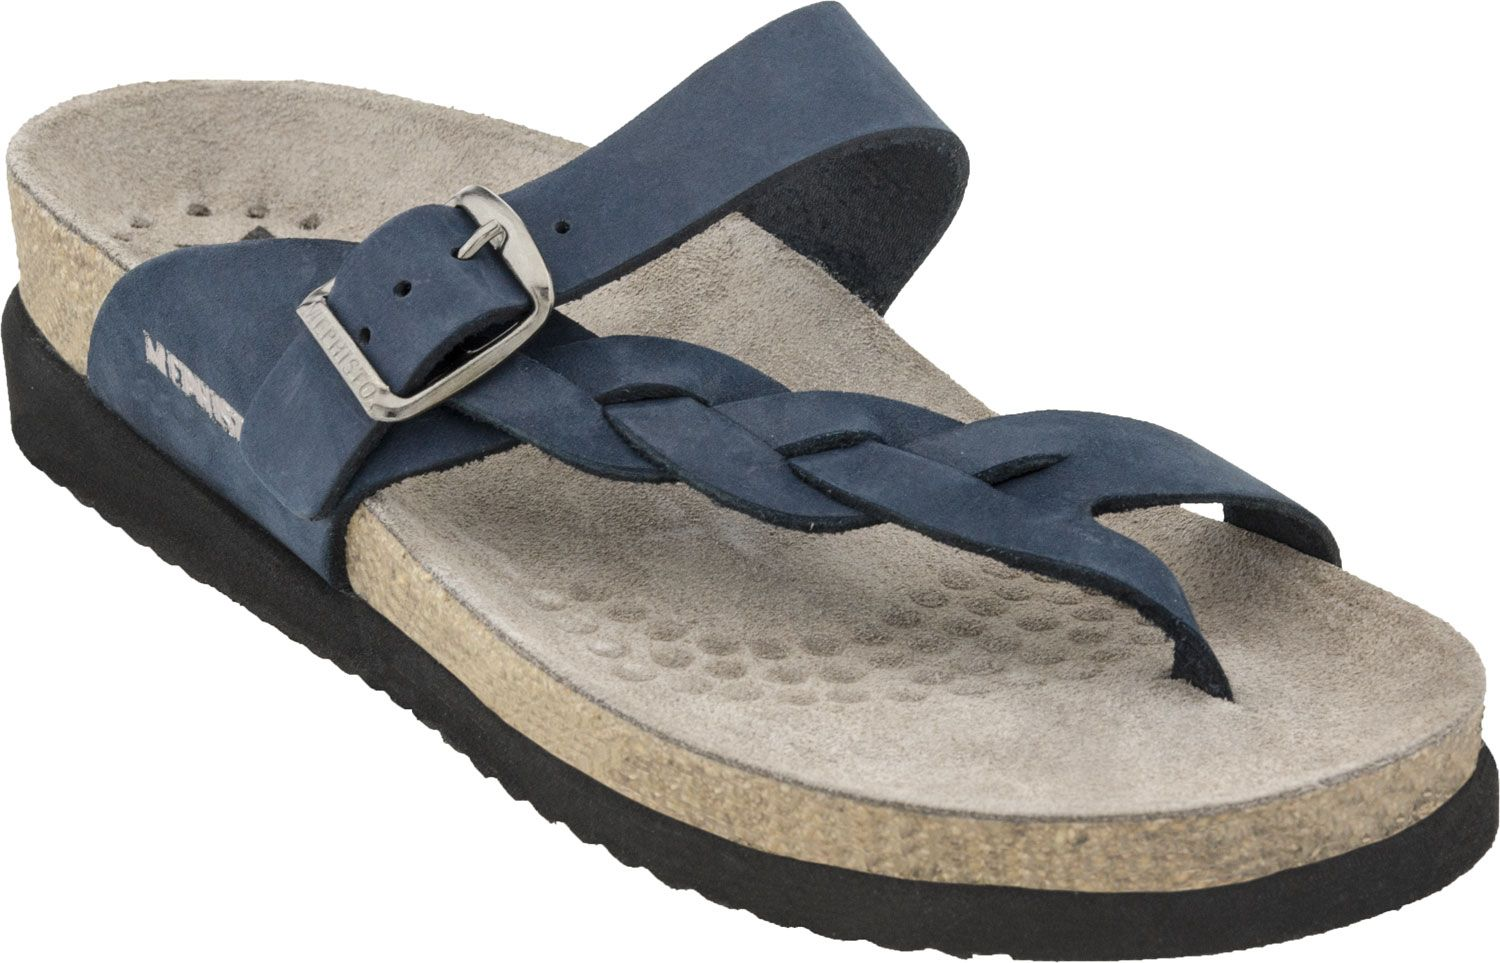 5527681150ba Buy the Mephisto Helen Twist women s thong sandals online at  PlanetShoes.com. Shop for Mephisto on sale with free shipping and returns  on orders over  49.